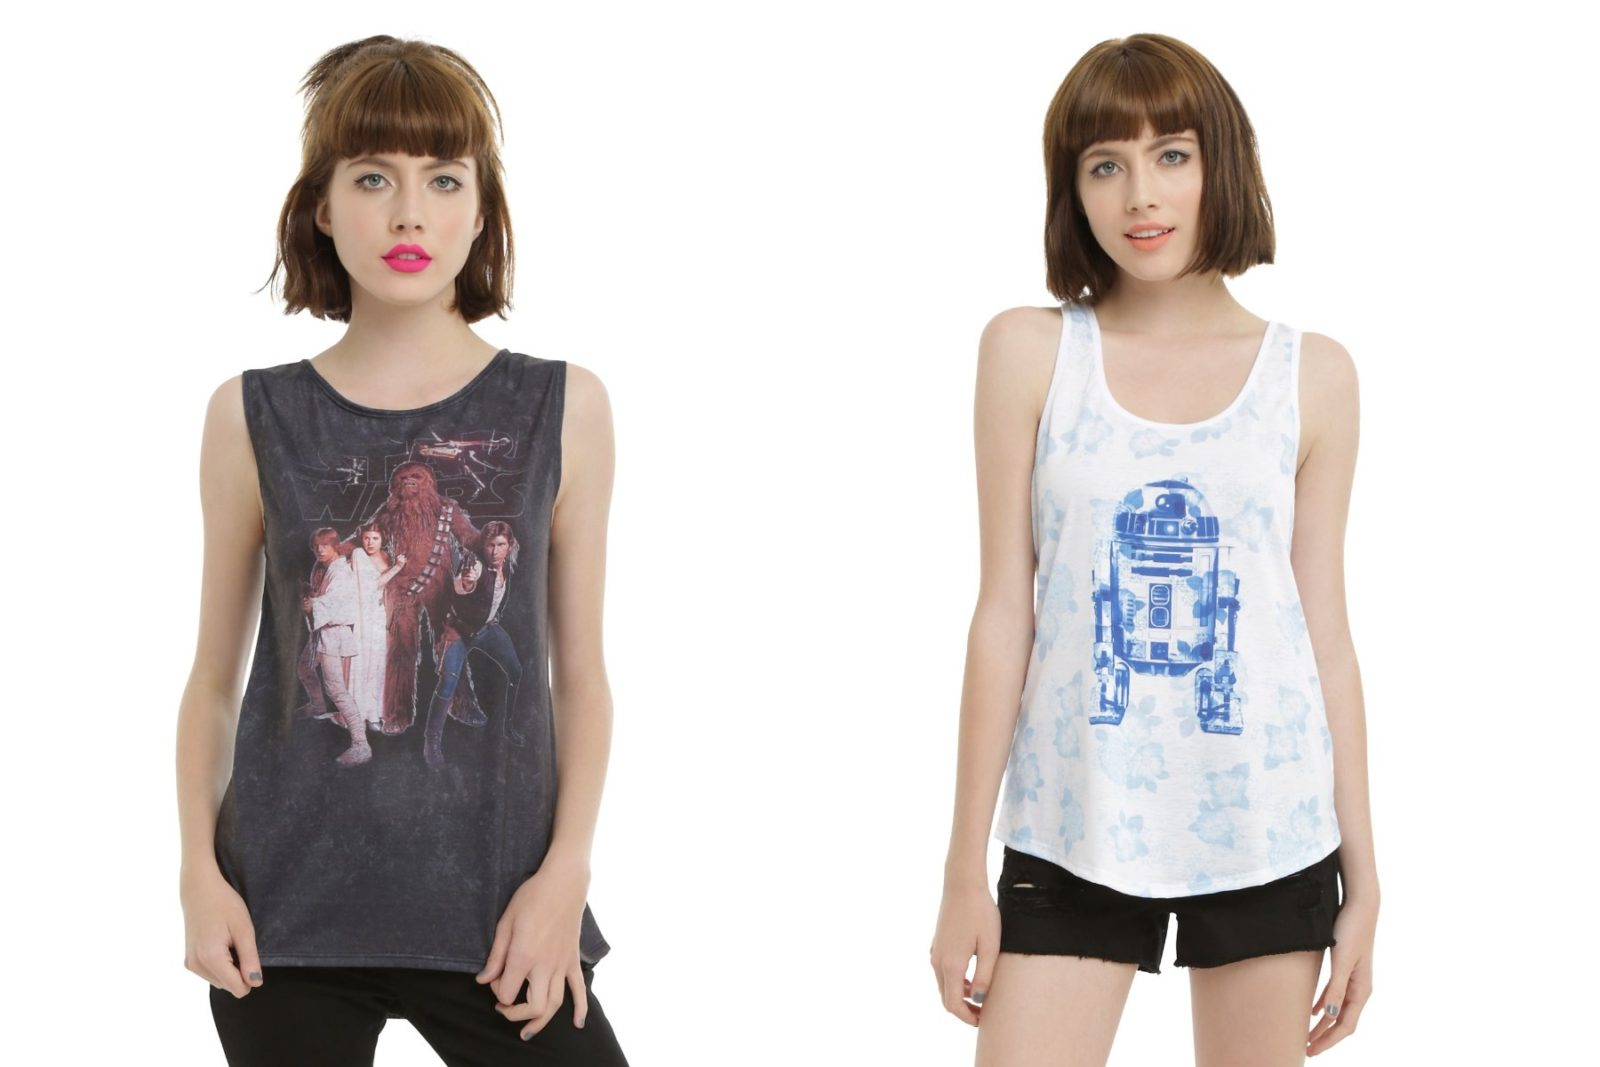 New Star Wars apparel at Hot Topic